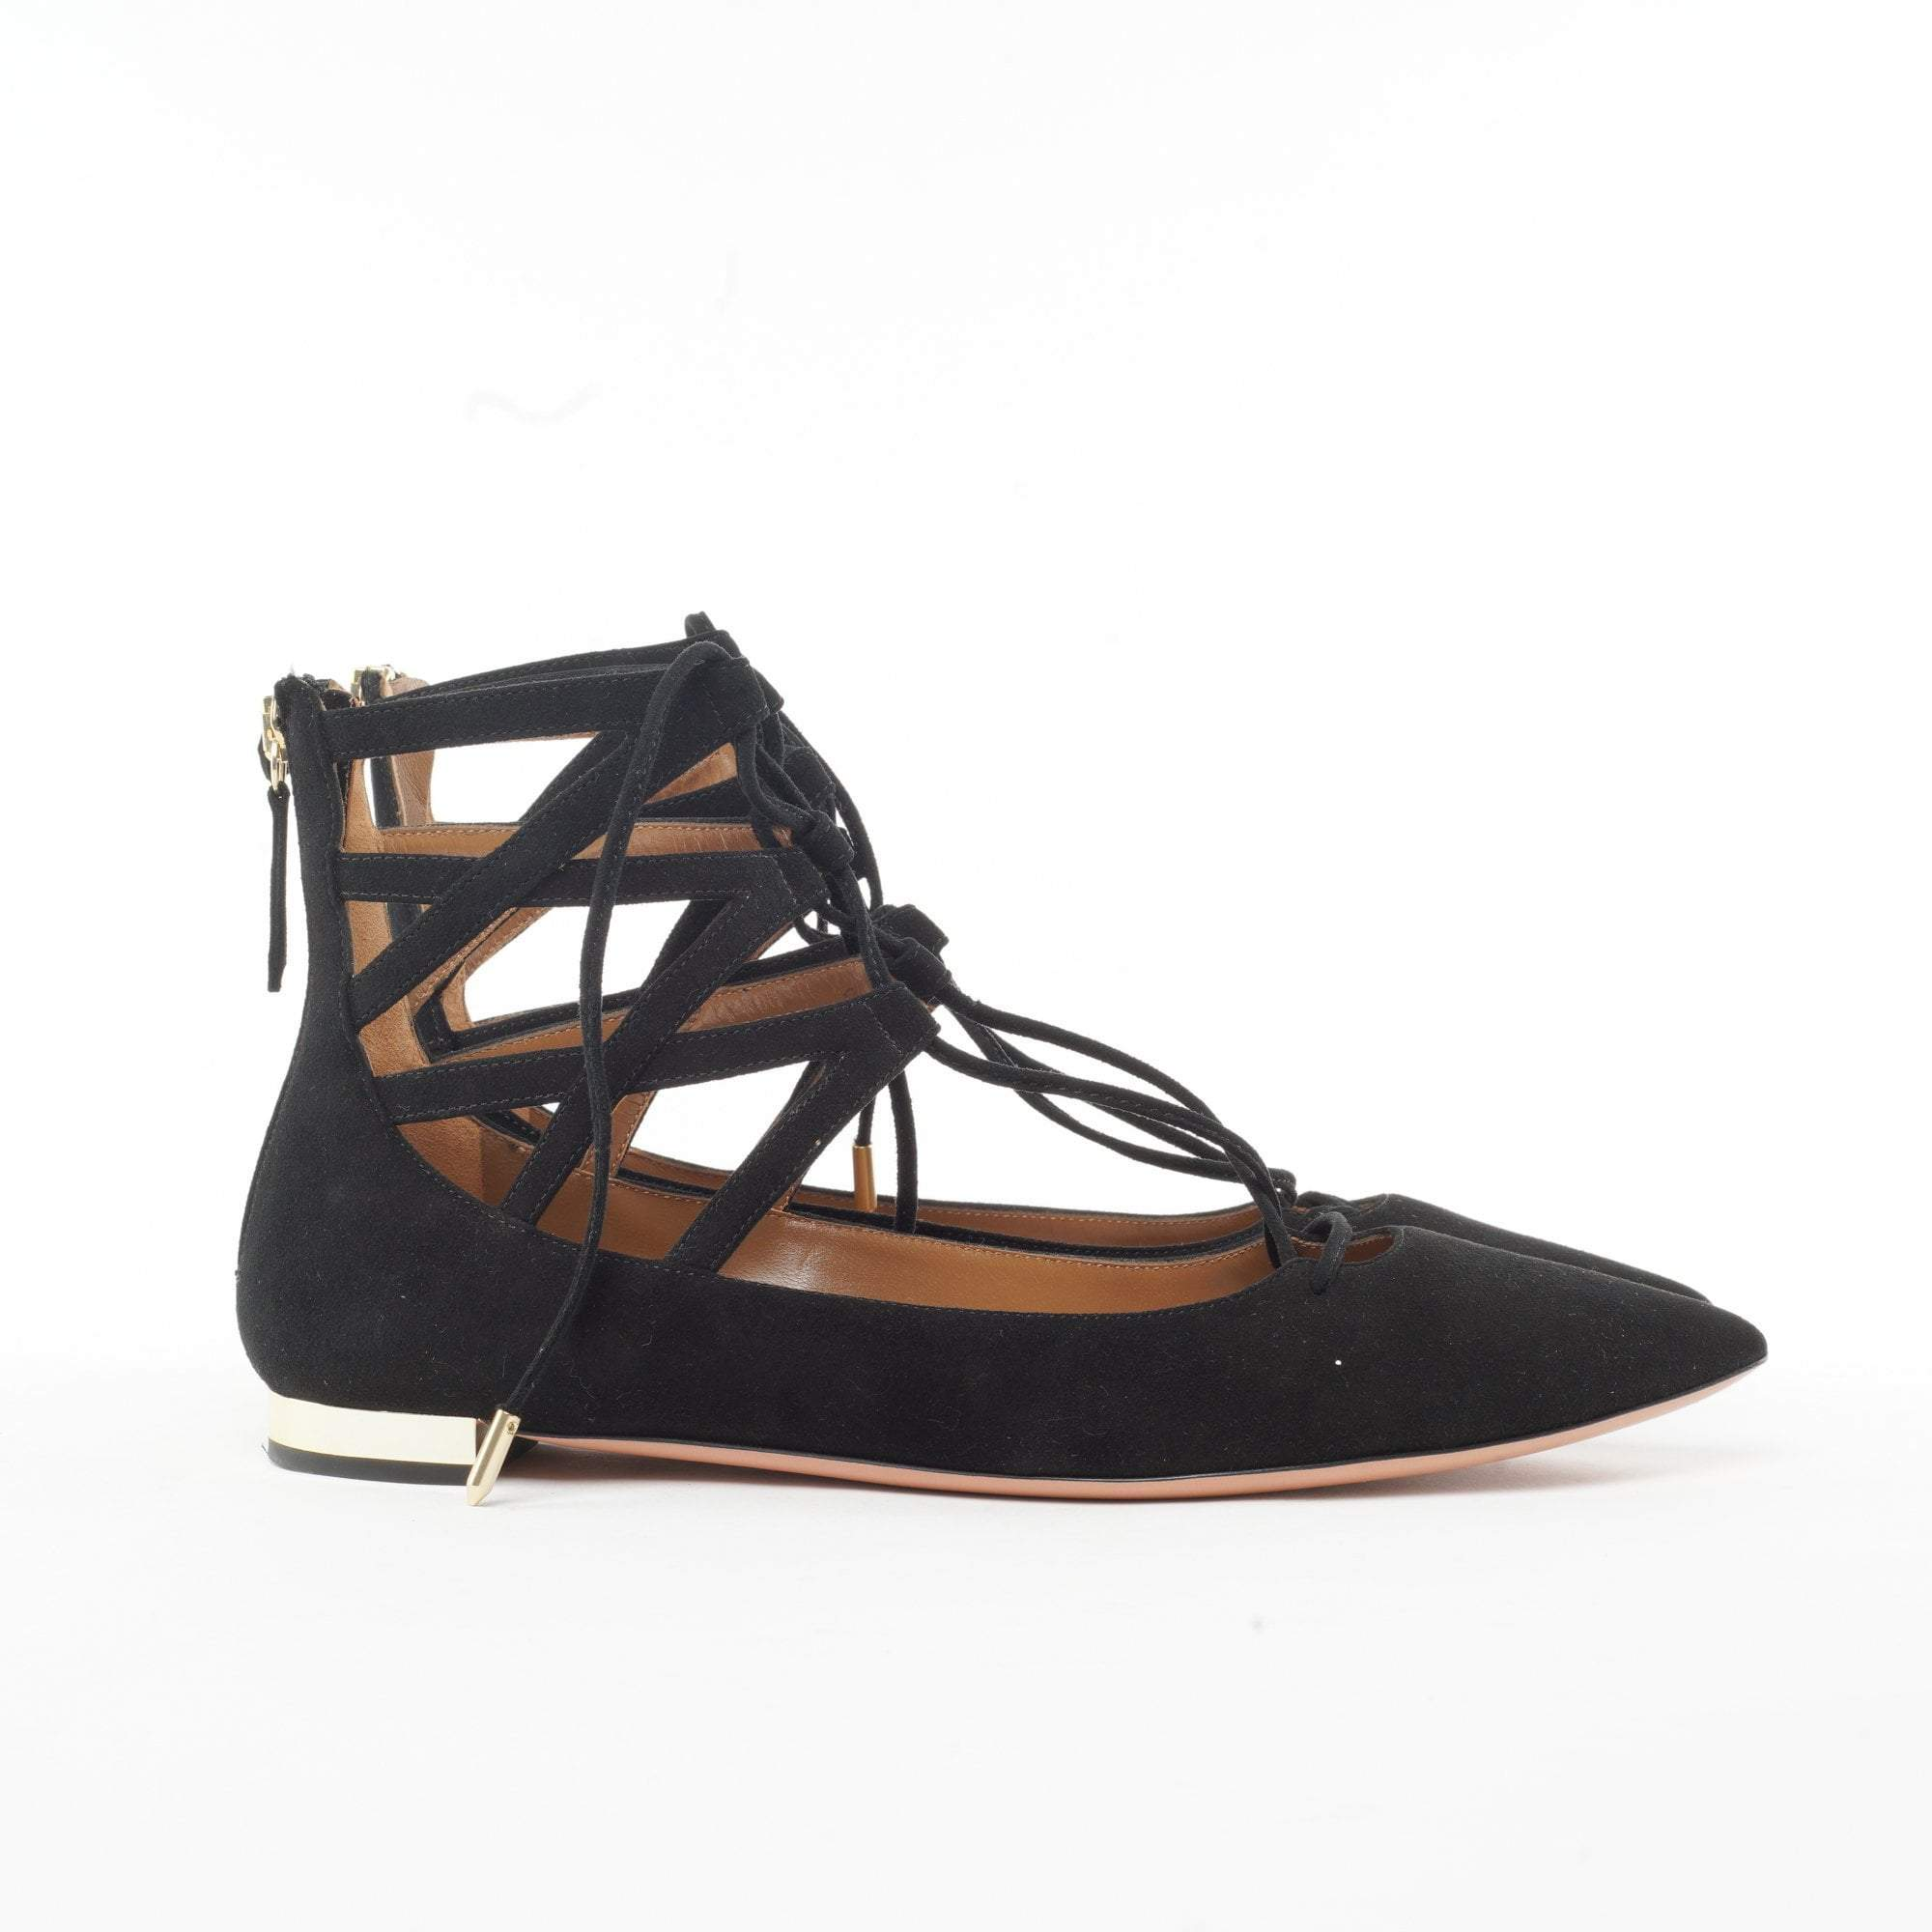 Aquazzura Belgravia Suede Lace Up Flats